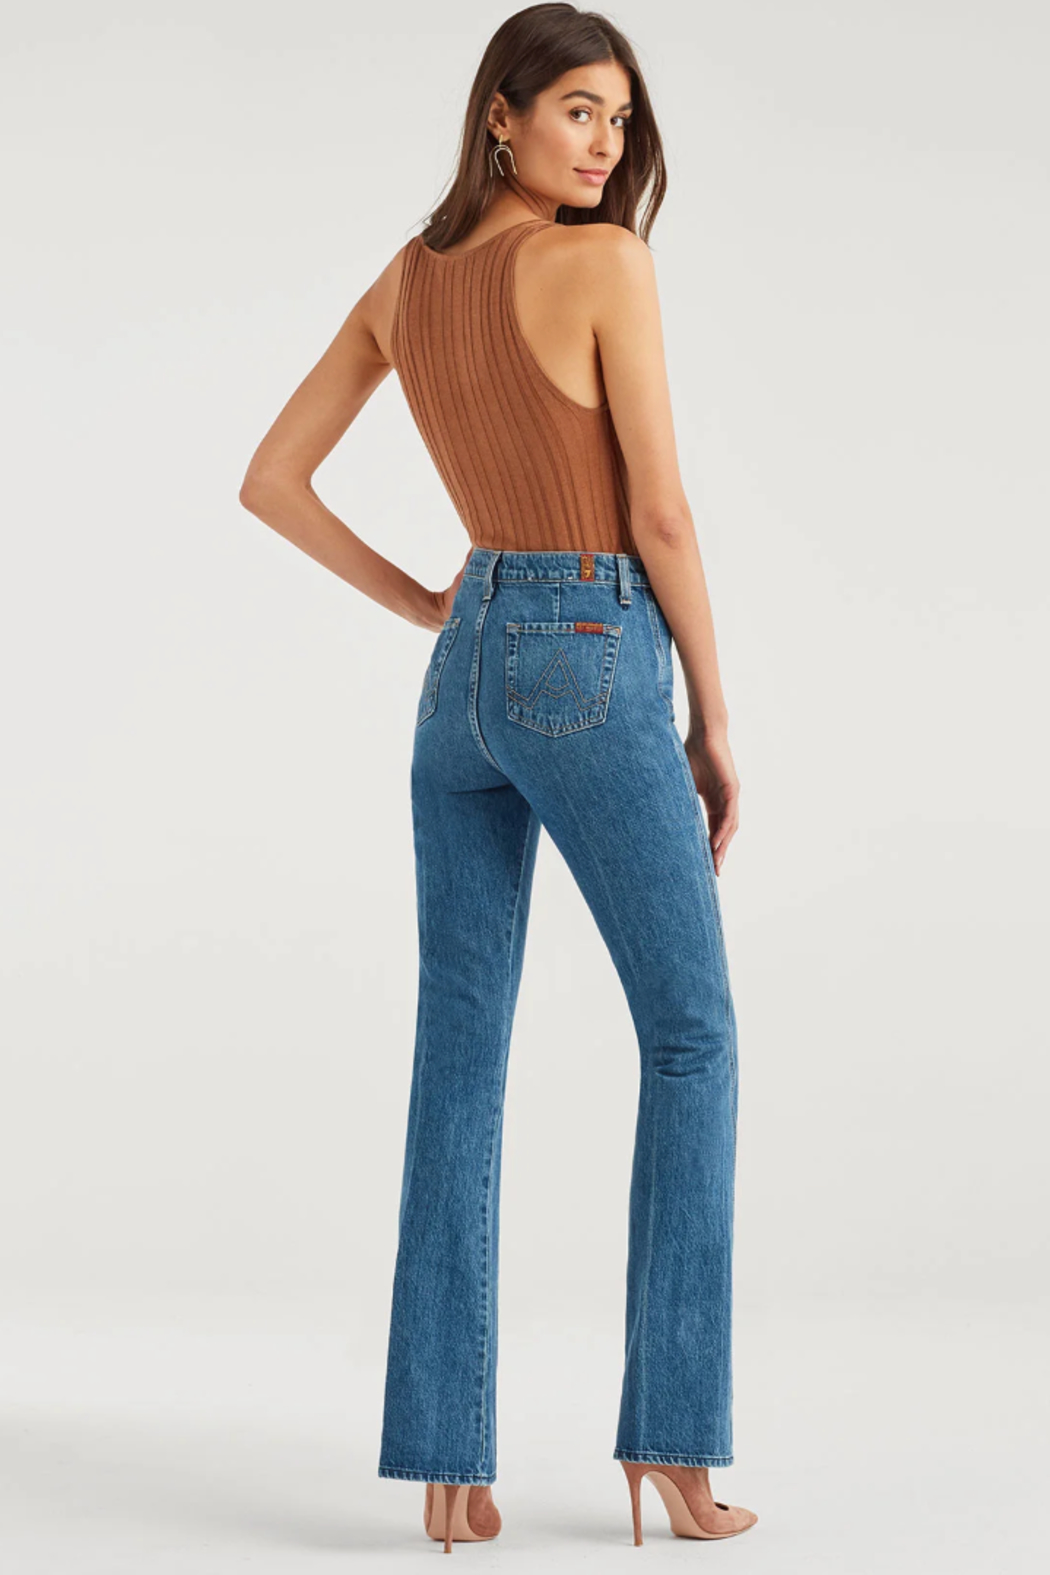 7 For all Mankind Modern A Pocket Jeans - Side Cropped Image